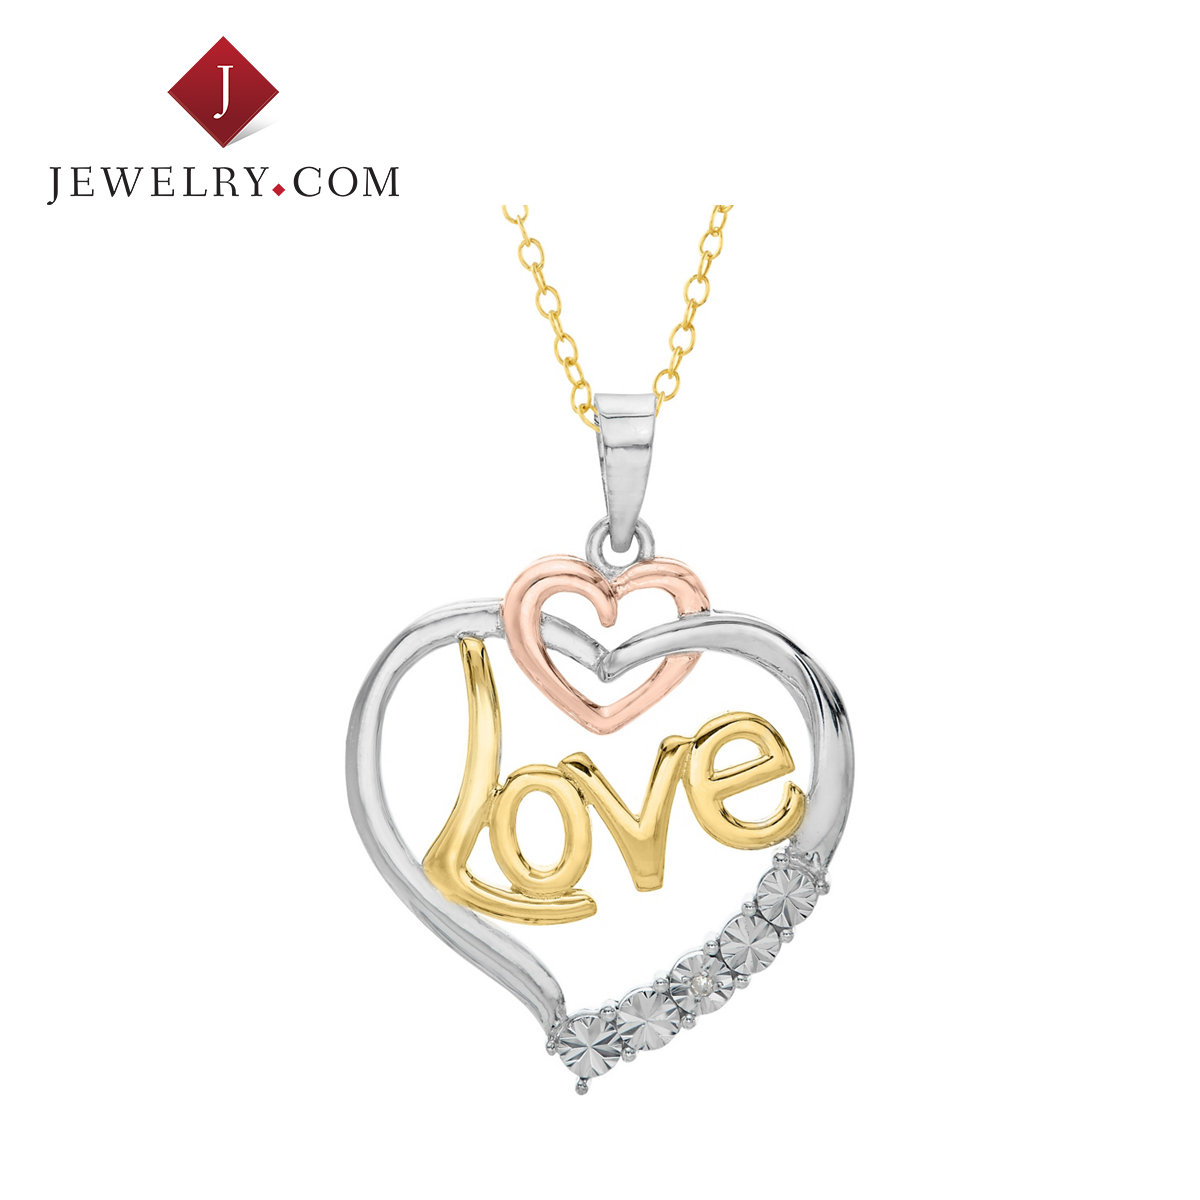 Jewelry.com official silver plated gold color 925 k gold love heart diamond charm female models pendant with sterling silver chain